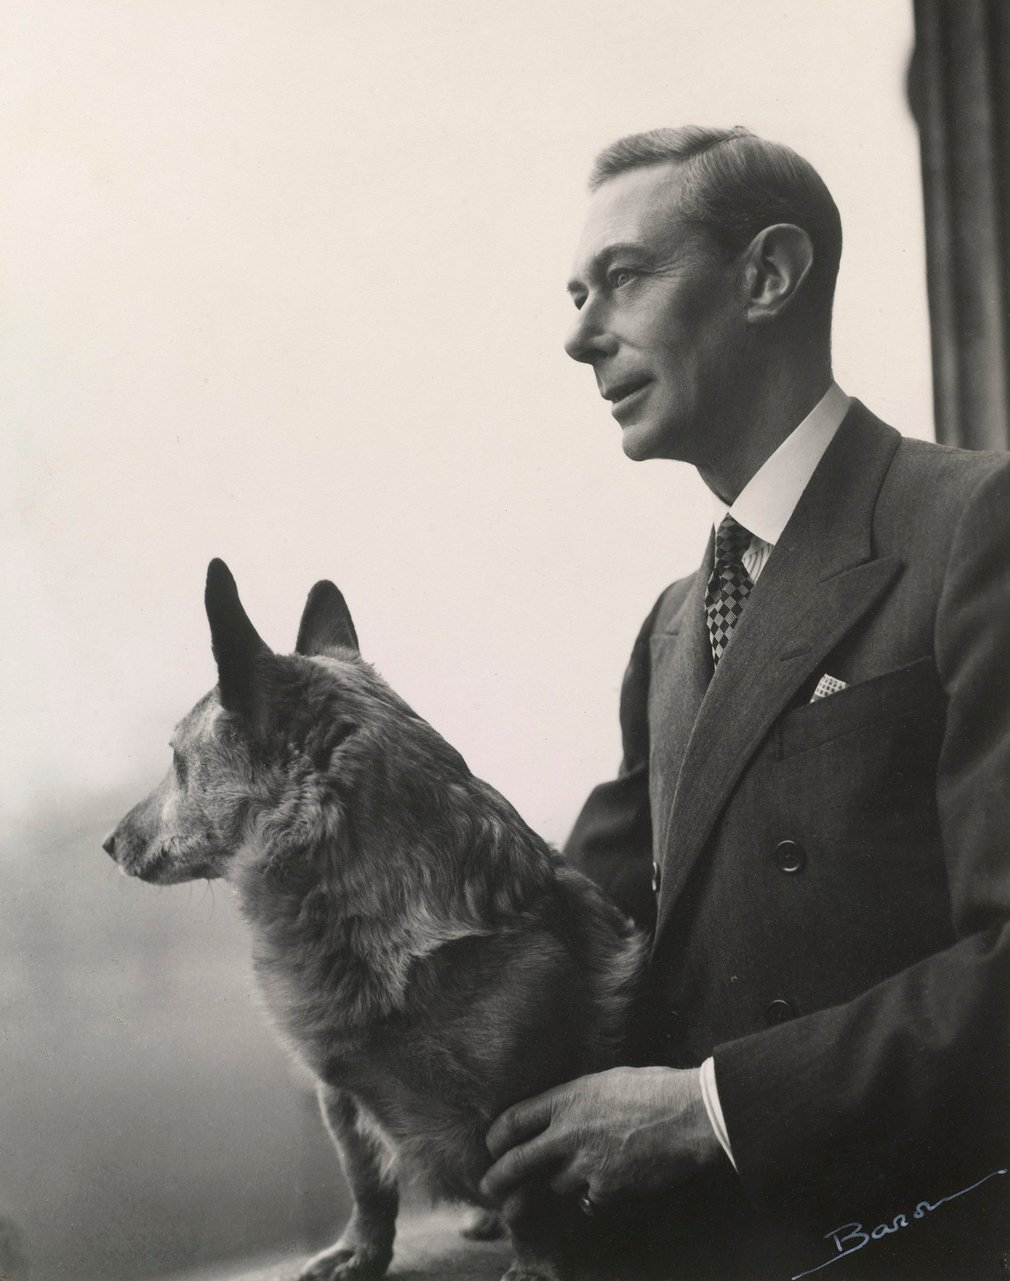 Photograph of King George VI (1895-1952) with a corgi. King George VI is standing and looking out of a window in Buckingham Palace. Captured in profile, he faces left. The dog sits on the windowsill, its head turned away from the camera. This is